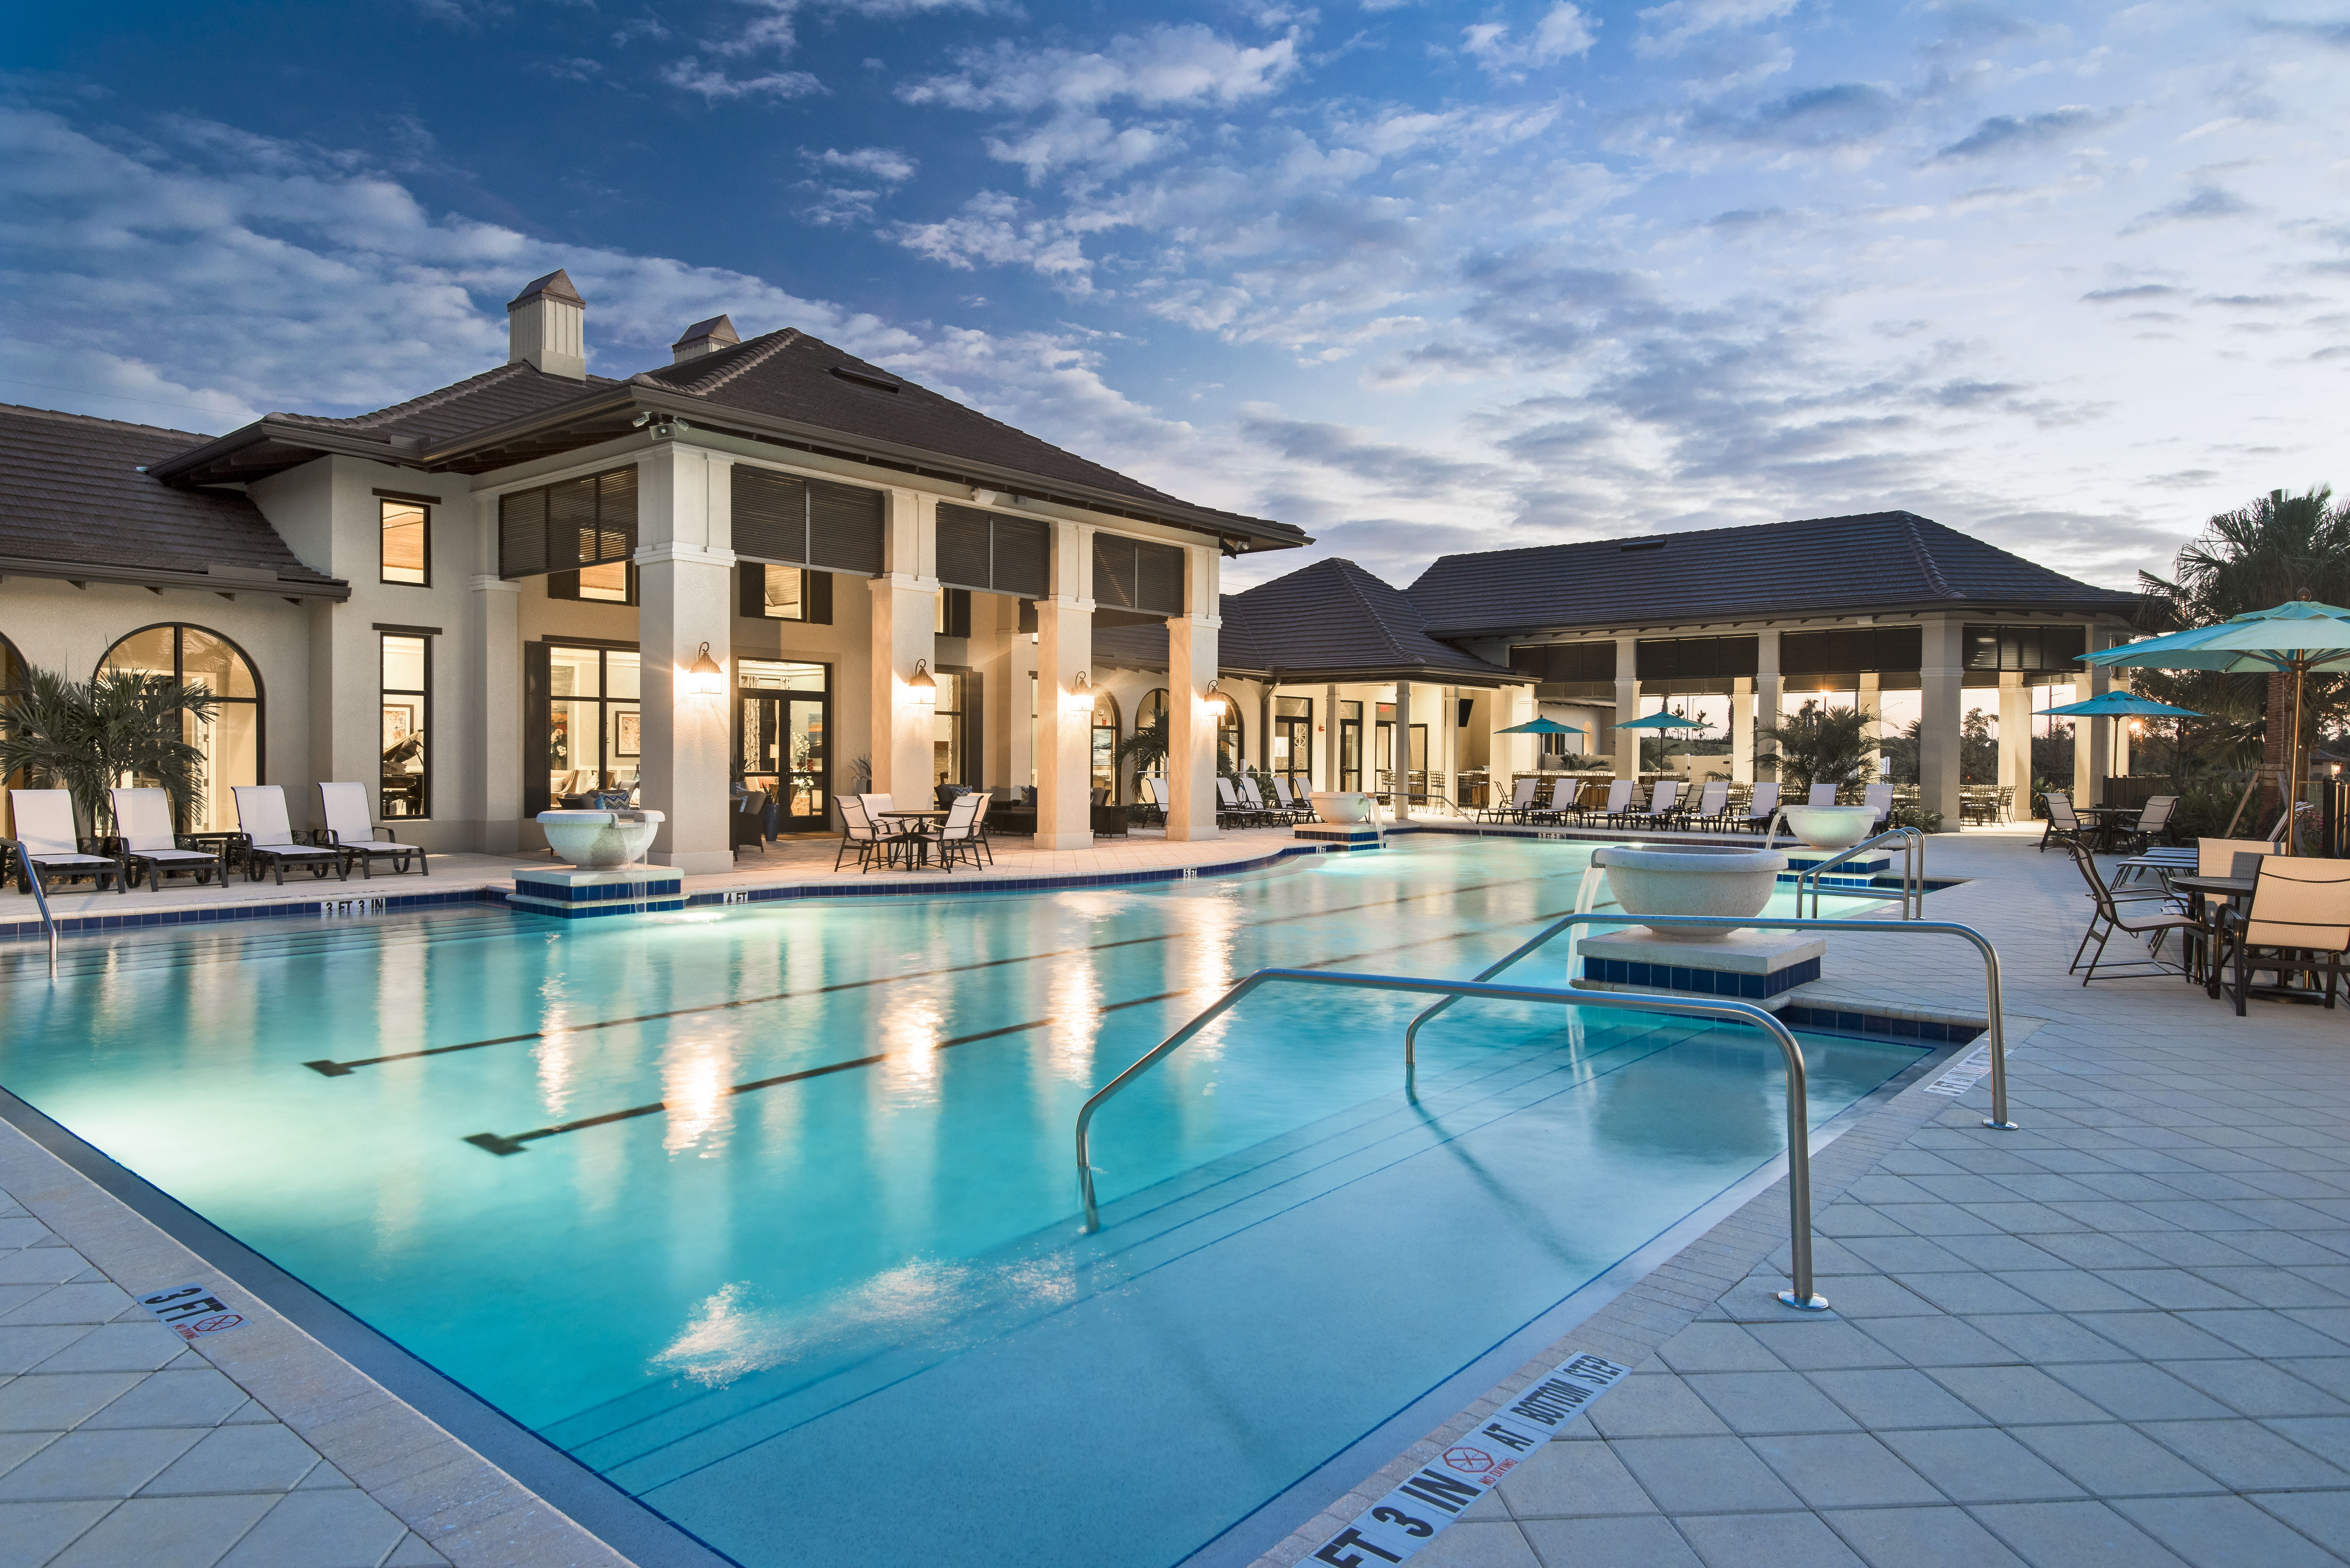 Lamorada S Spectacular Amenities Center Come See Why You Should Call Lamorada Home Today Lakefront Homes Naples Real Estate Estate Homes